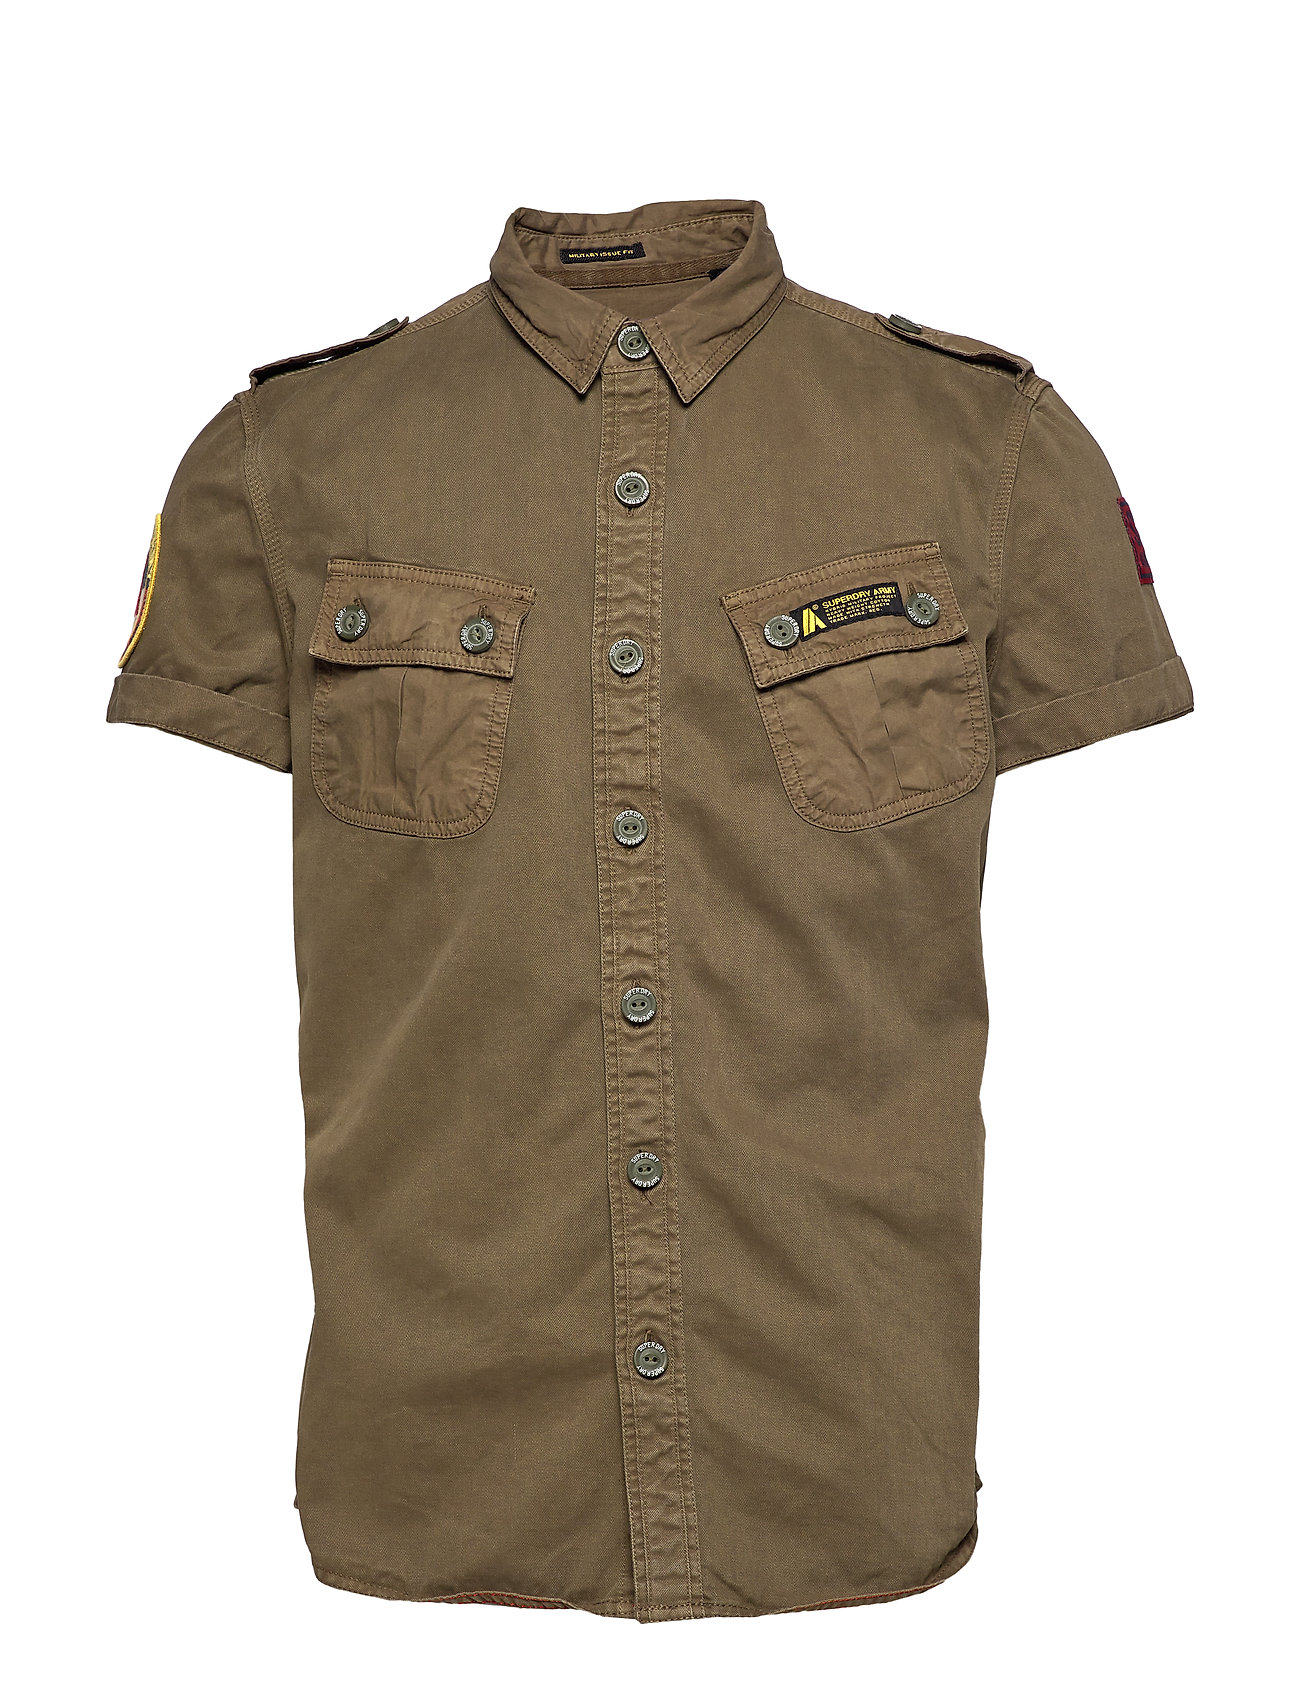 Superdry HYBRID ARMY CORPS LIGHT S/S SHIRT - TRENCH ARMY